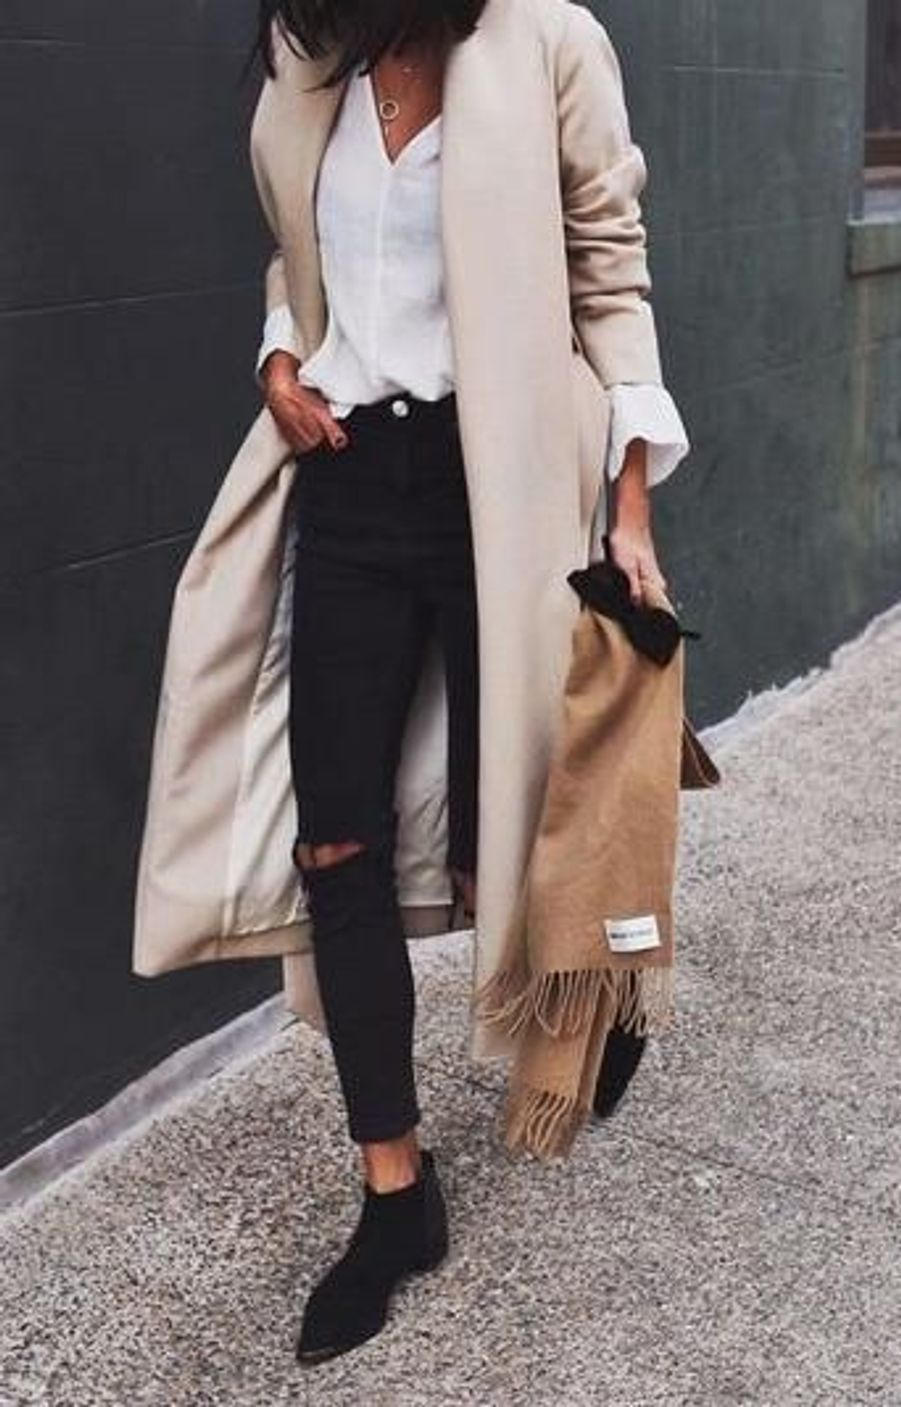 Manteau long beigehttps://www.pinterest.fr/pin/826551337833286409/